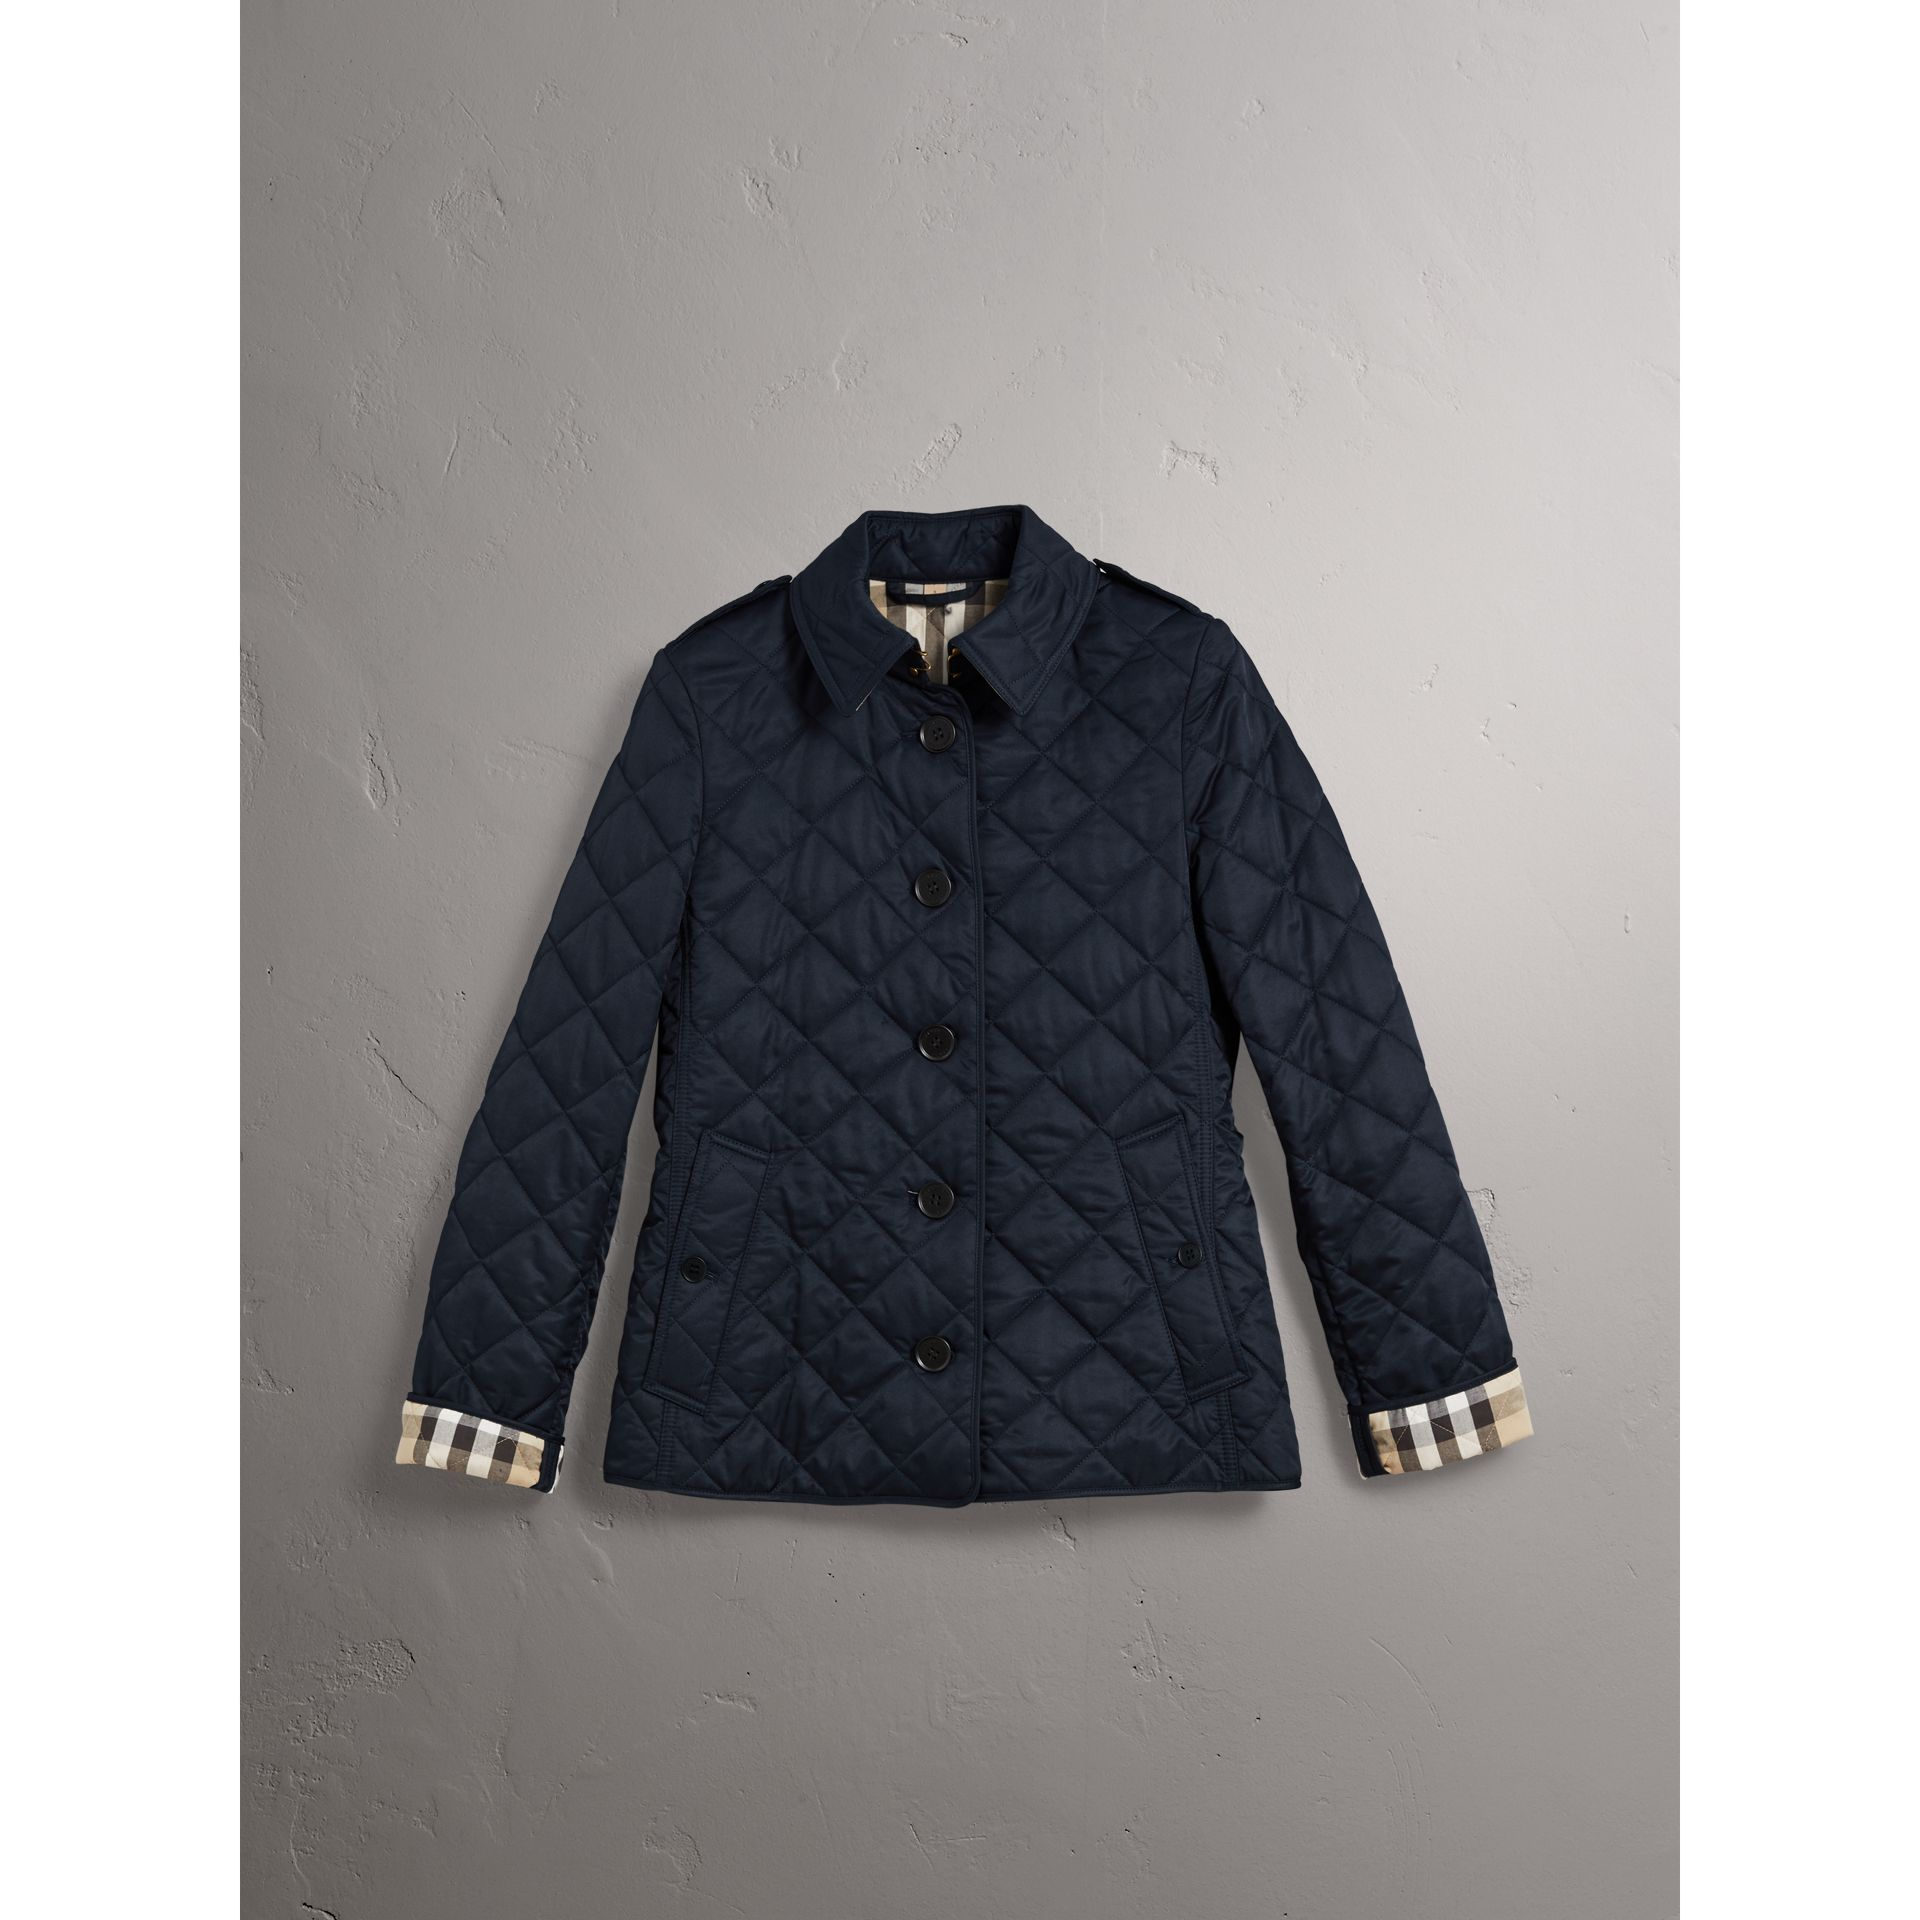 Diamond Quilted Jacket in Navy - Women | Burberry Singapore - gallery image 4